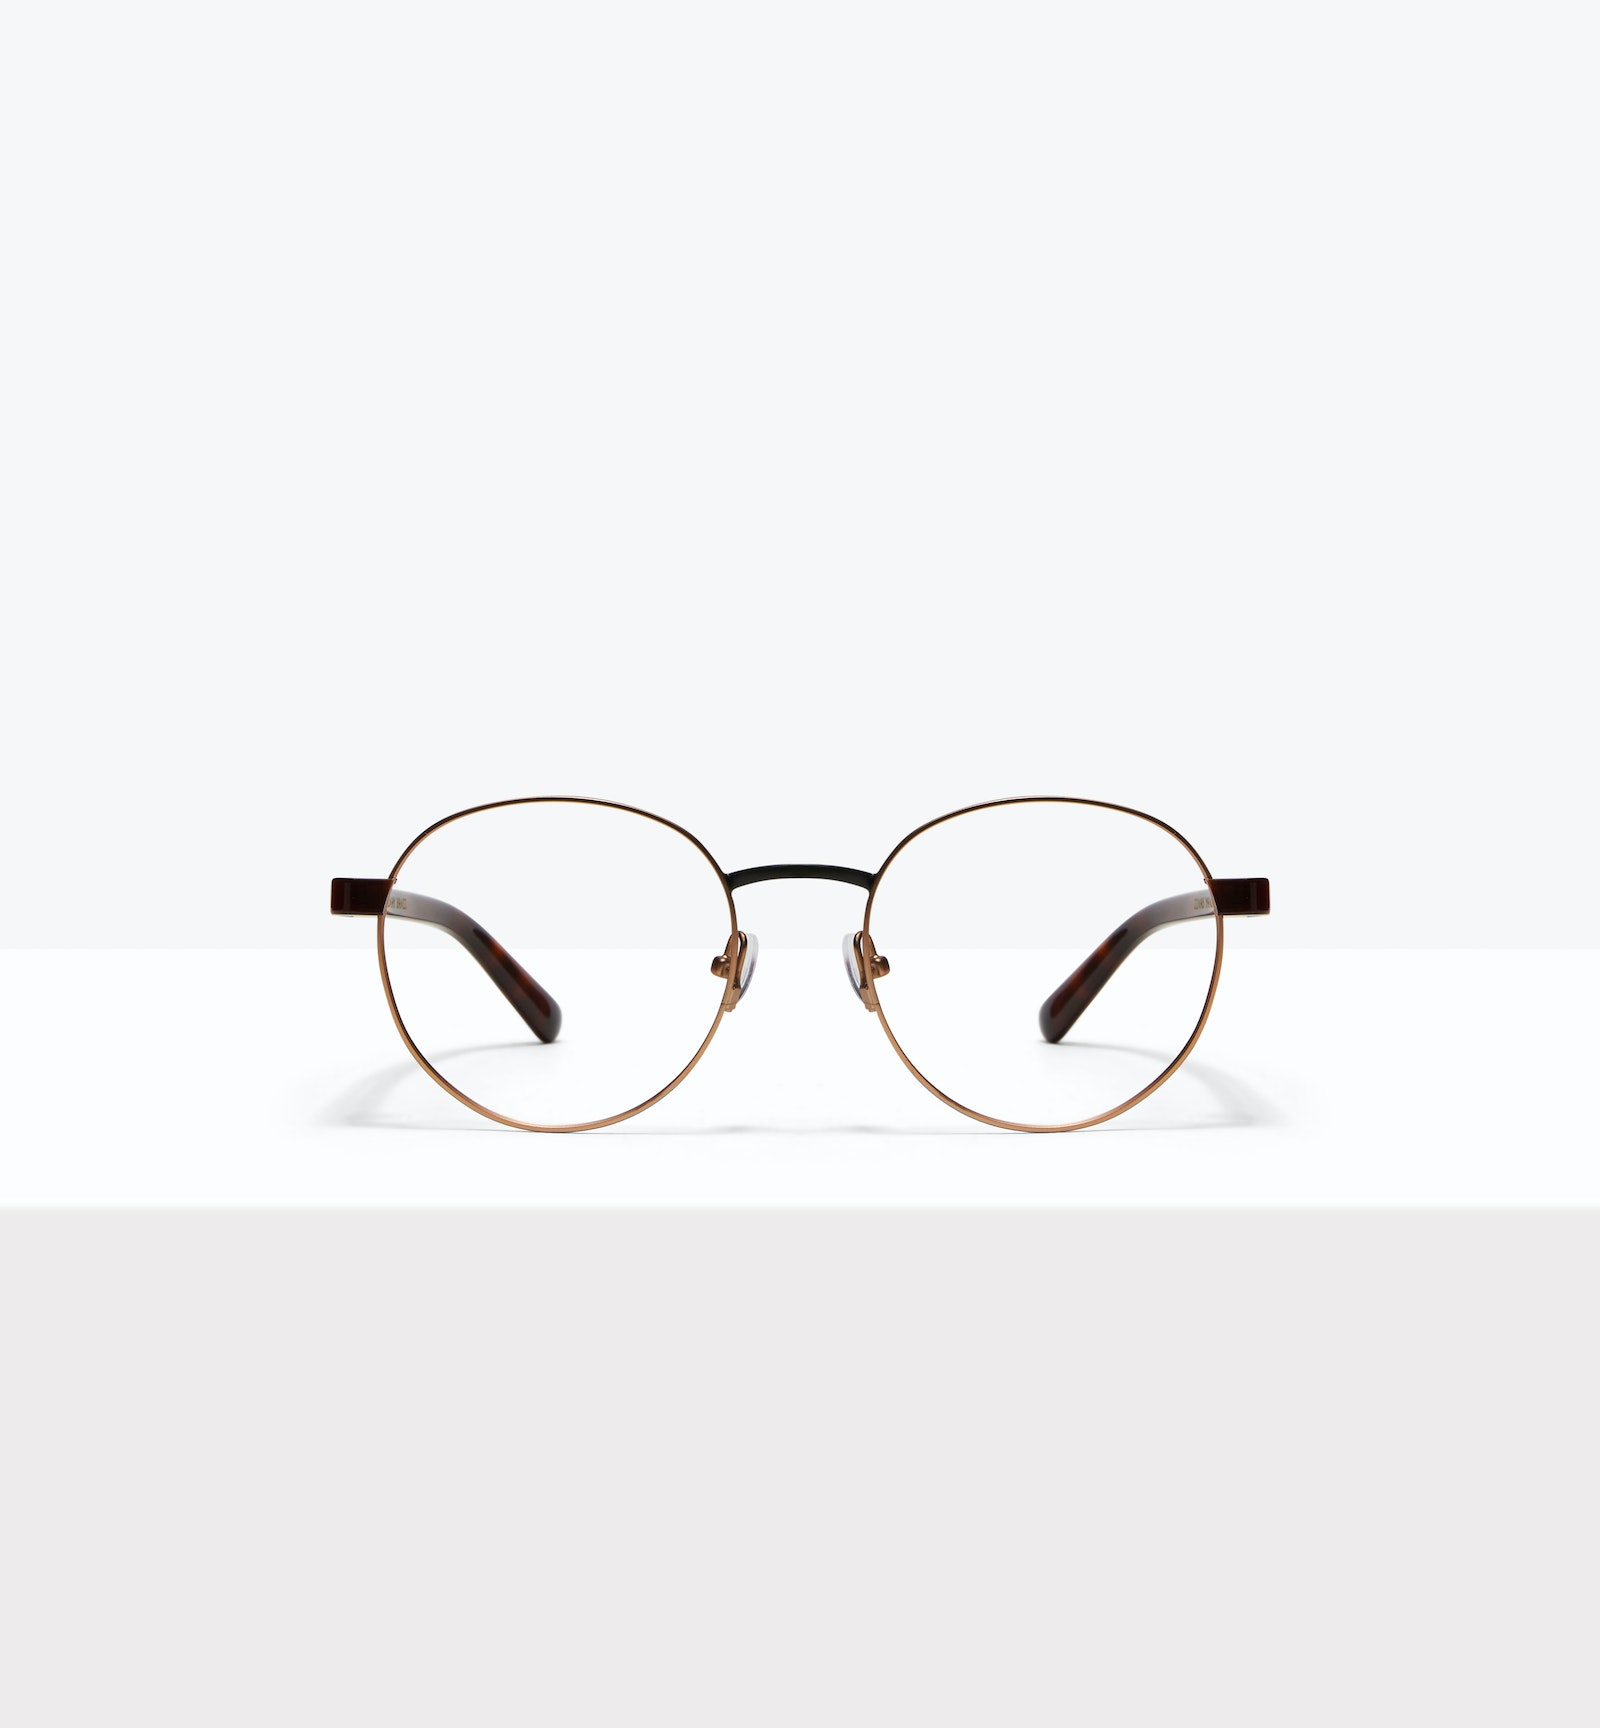 Affordable Fashion Glasses Round Eyeglasses Men Alter Dark Brass